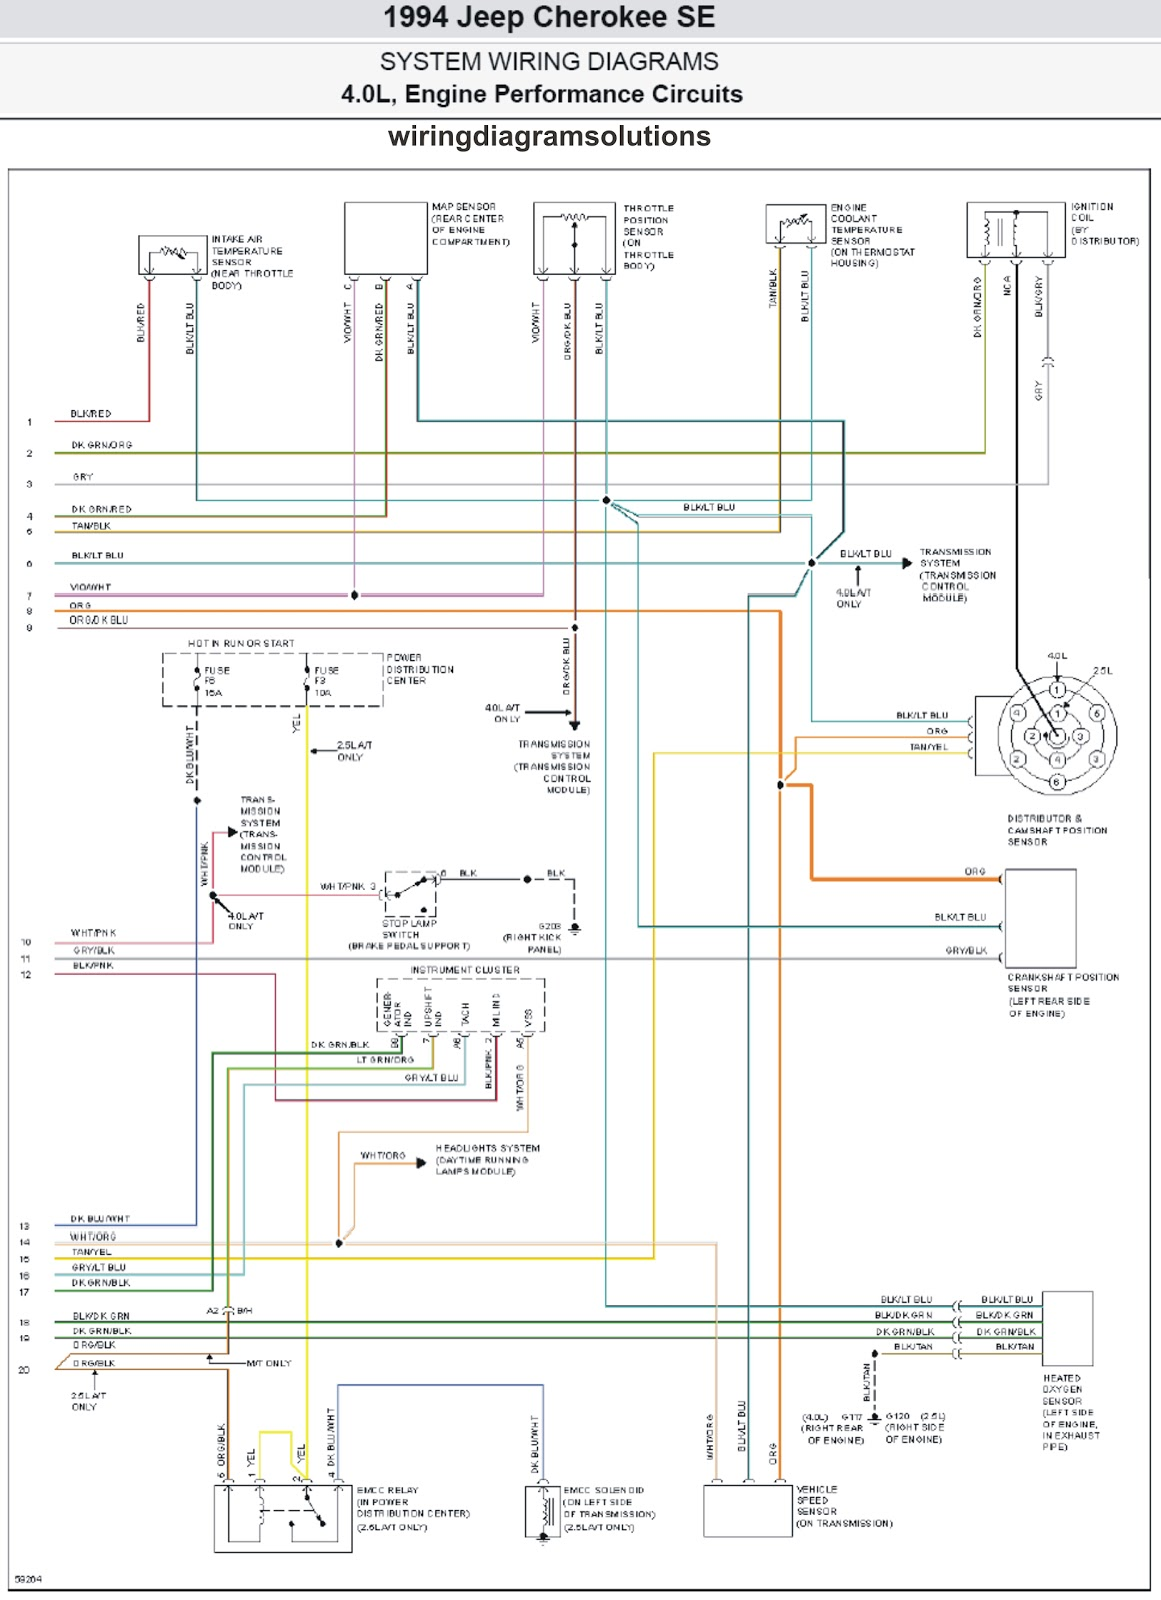 Car Stereo Wiring Diagram Jeep Cherokee Pictures